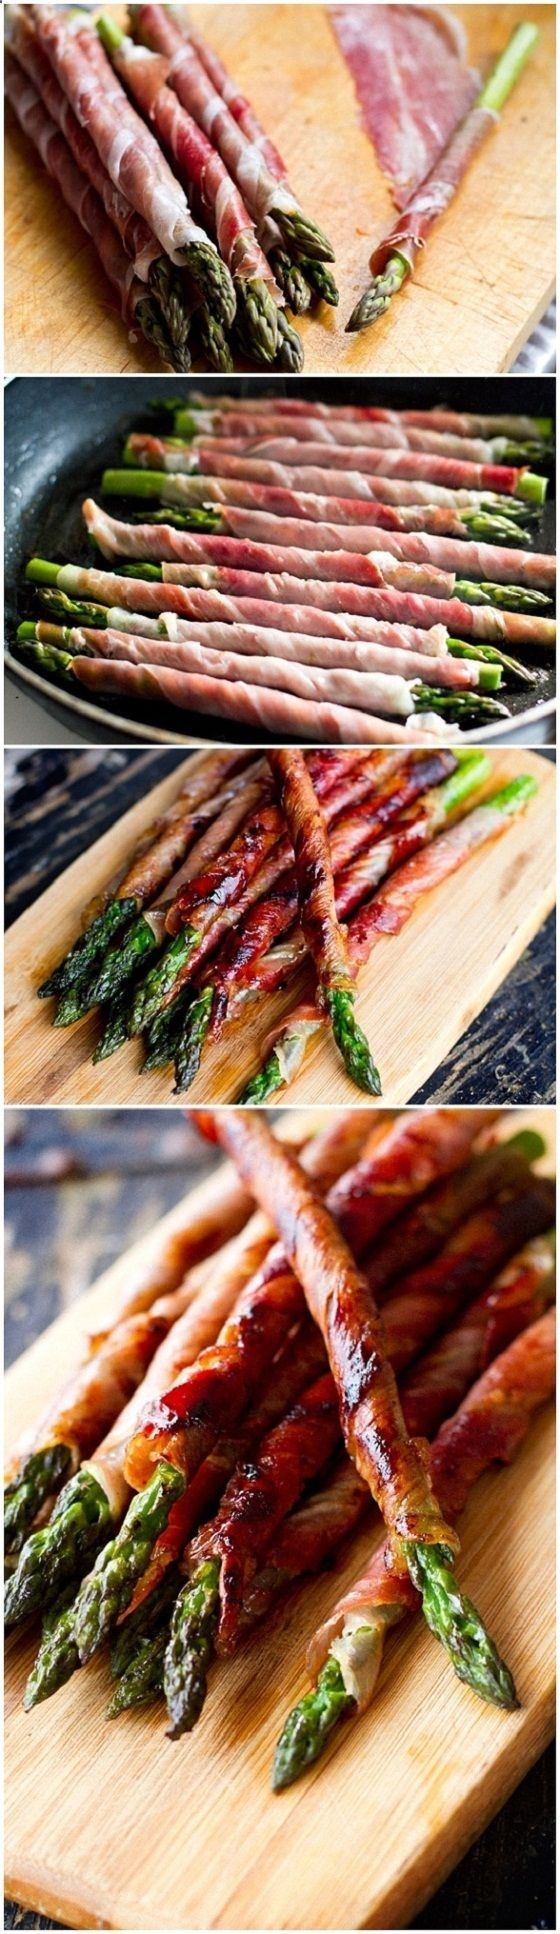 Proscuitto wrapped asparagus. Be sure to cook it at med-high heat, and serve…